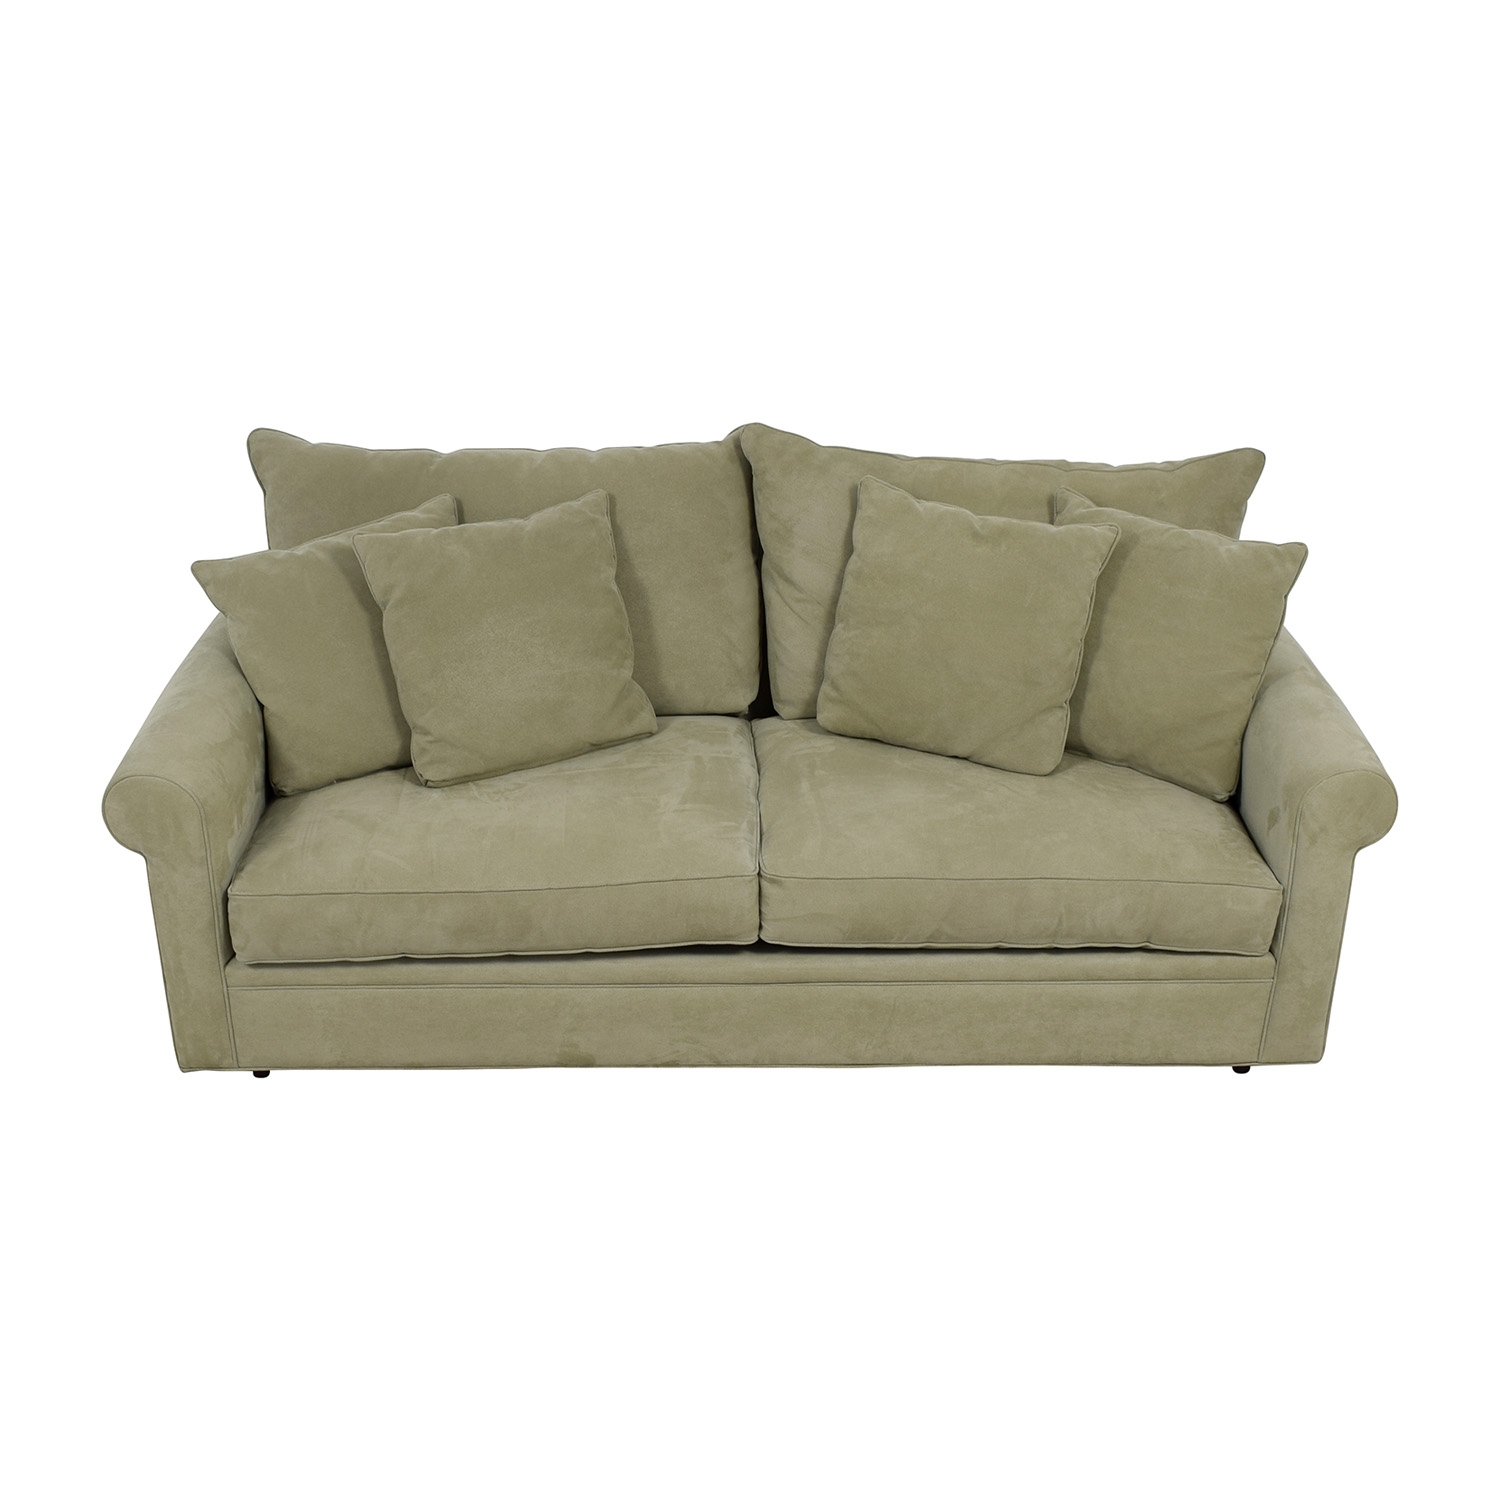 Macy's Sage Green Two-Cushion Sofa sale